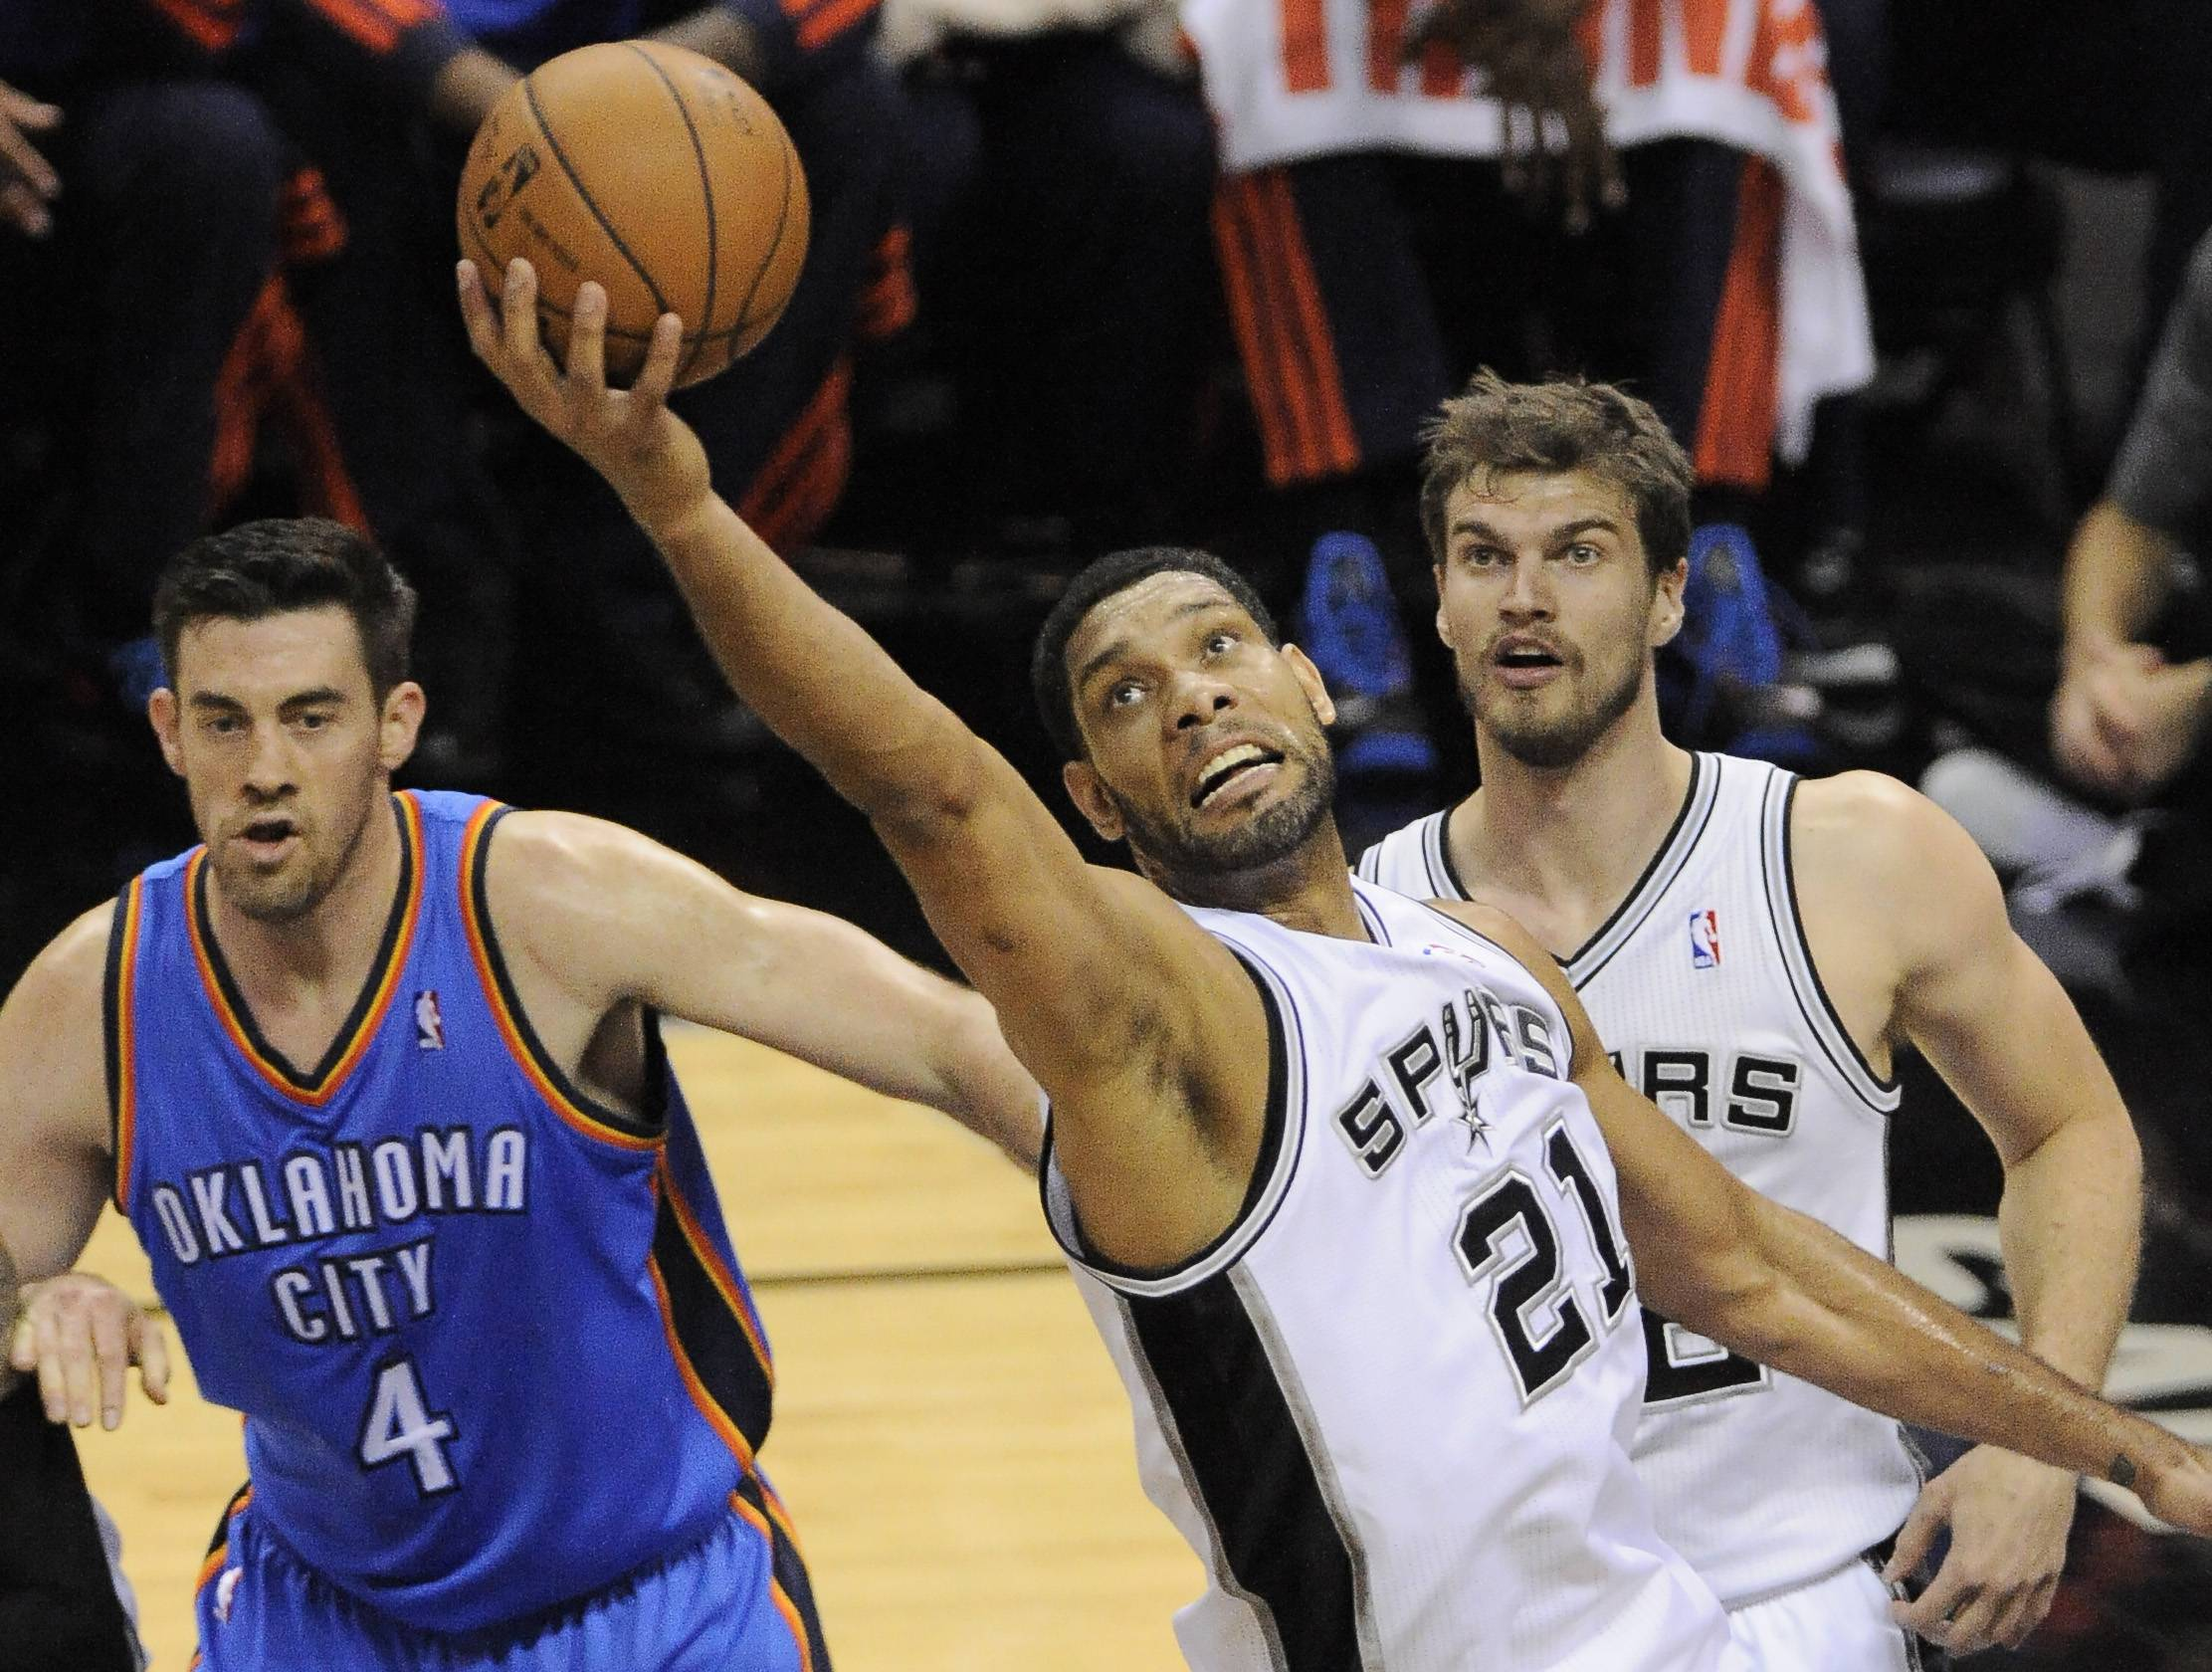 San Antonio Spurs forward Tim Duncan (21) grabs a rebound as Oklahoma City Thunder forward Nick Collison (4) and Spurs forward Tiago Splitter, of Brazil, watch during the first half of Game 2 of the Western Conference finals NBA basketball playoff series, Wednesday, May 21, 2014, in San Antonio.